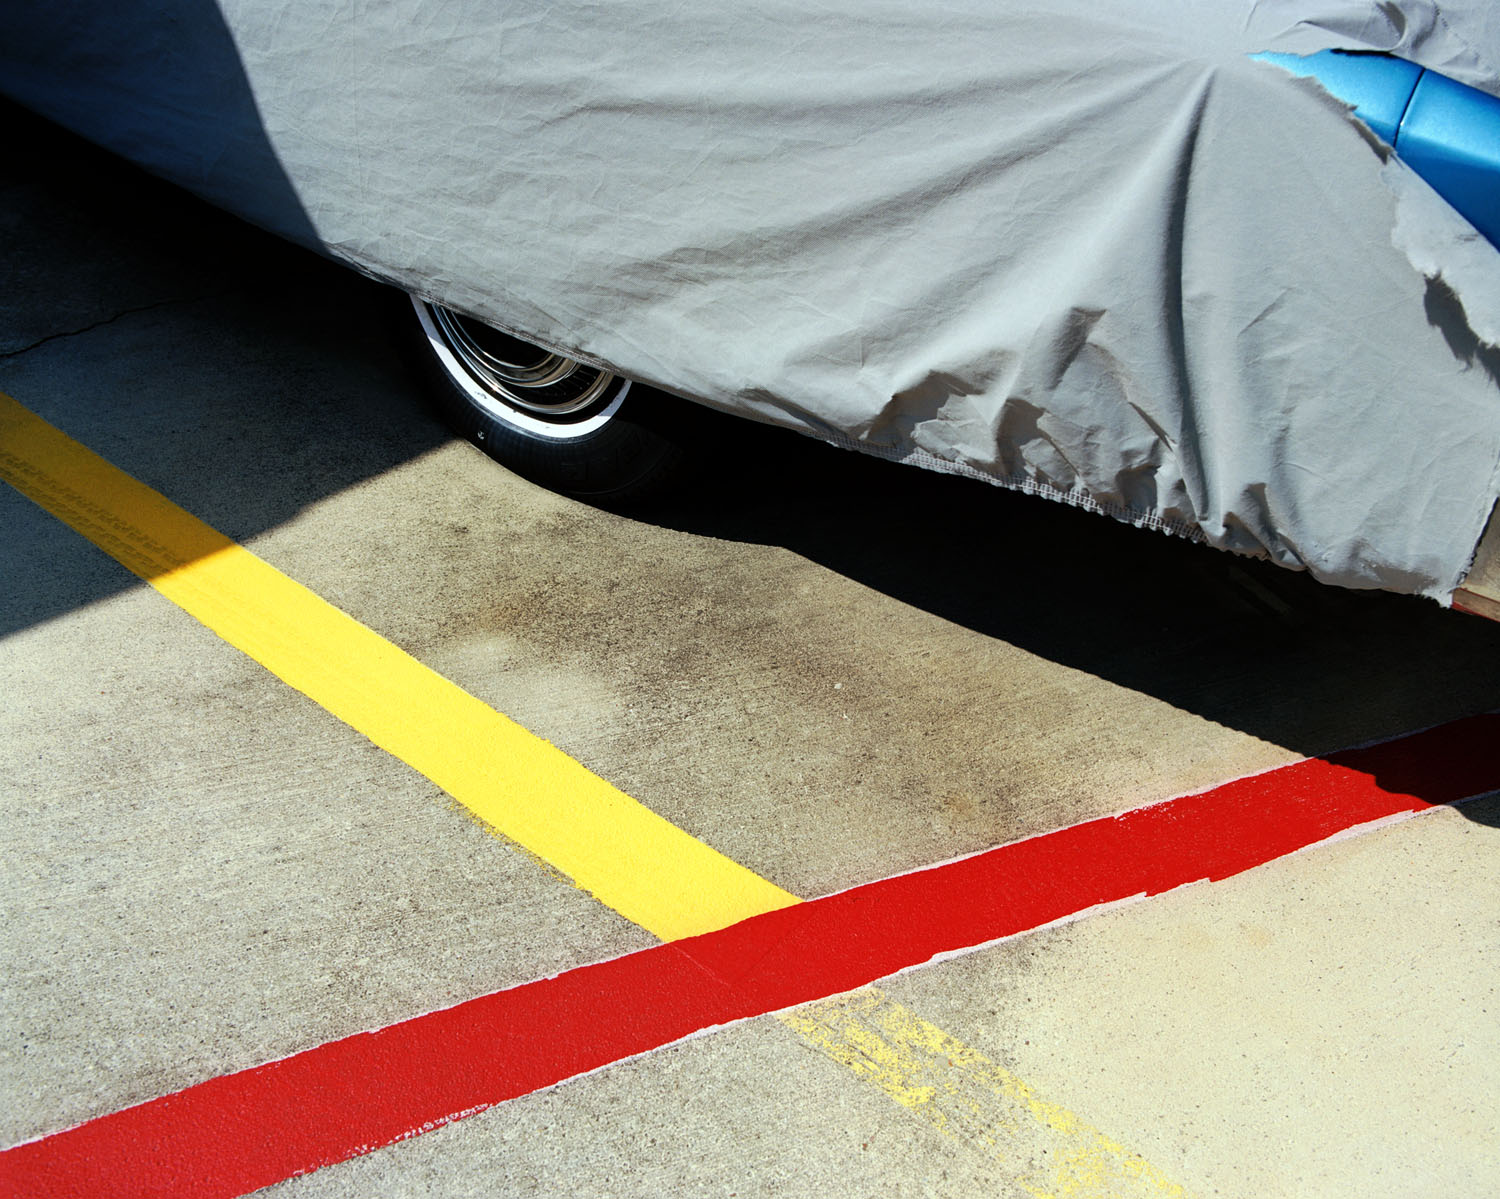 Covered Caddy (2003)